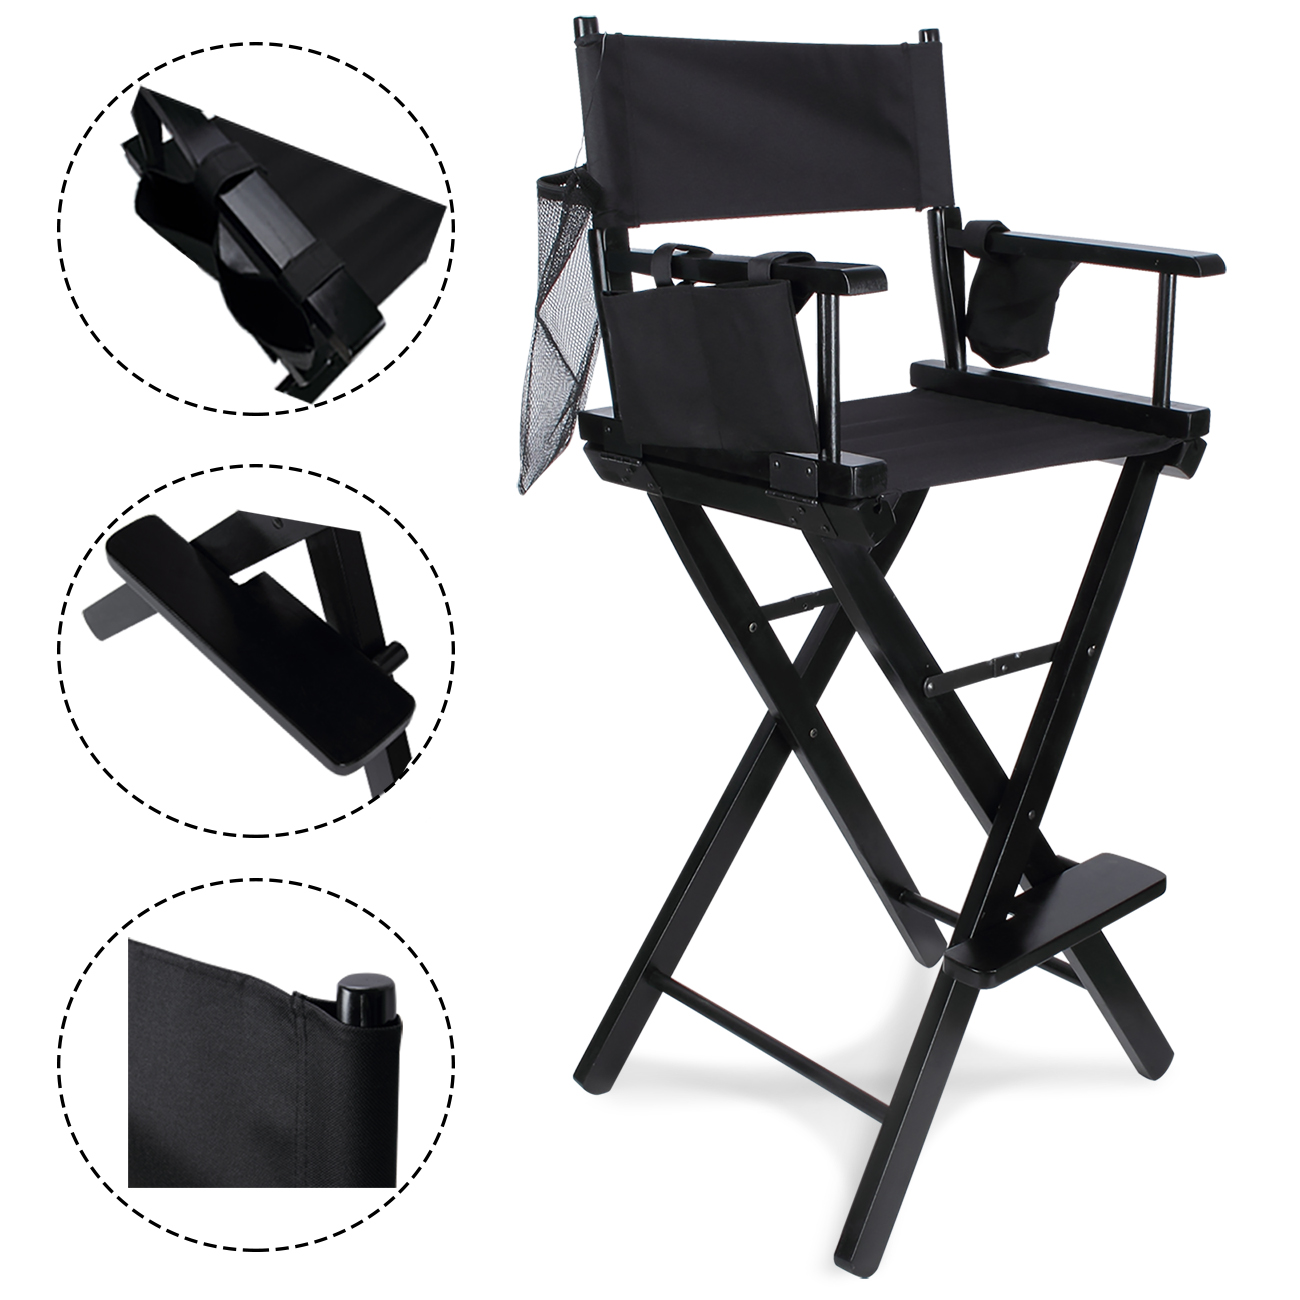 makeup chairs for professional artists swing chair sale 30 artist directors wood light weight details about foldable black